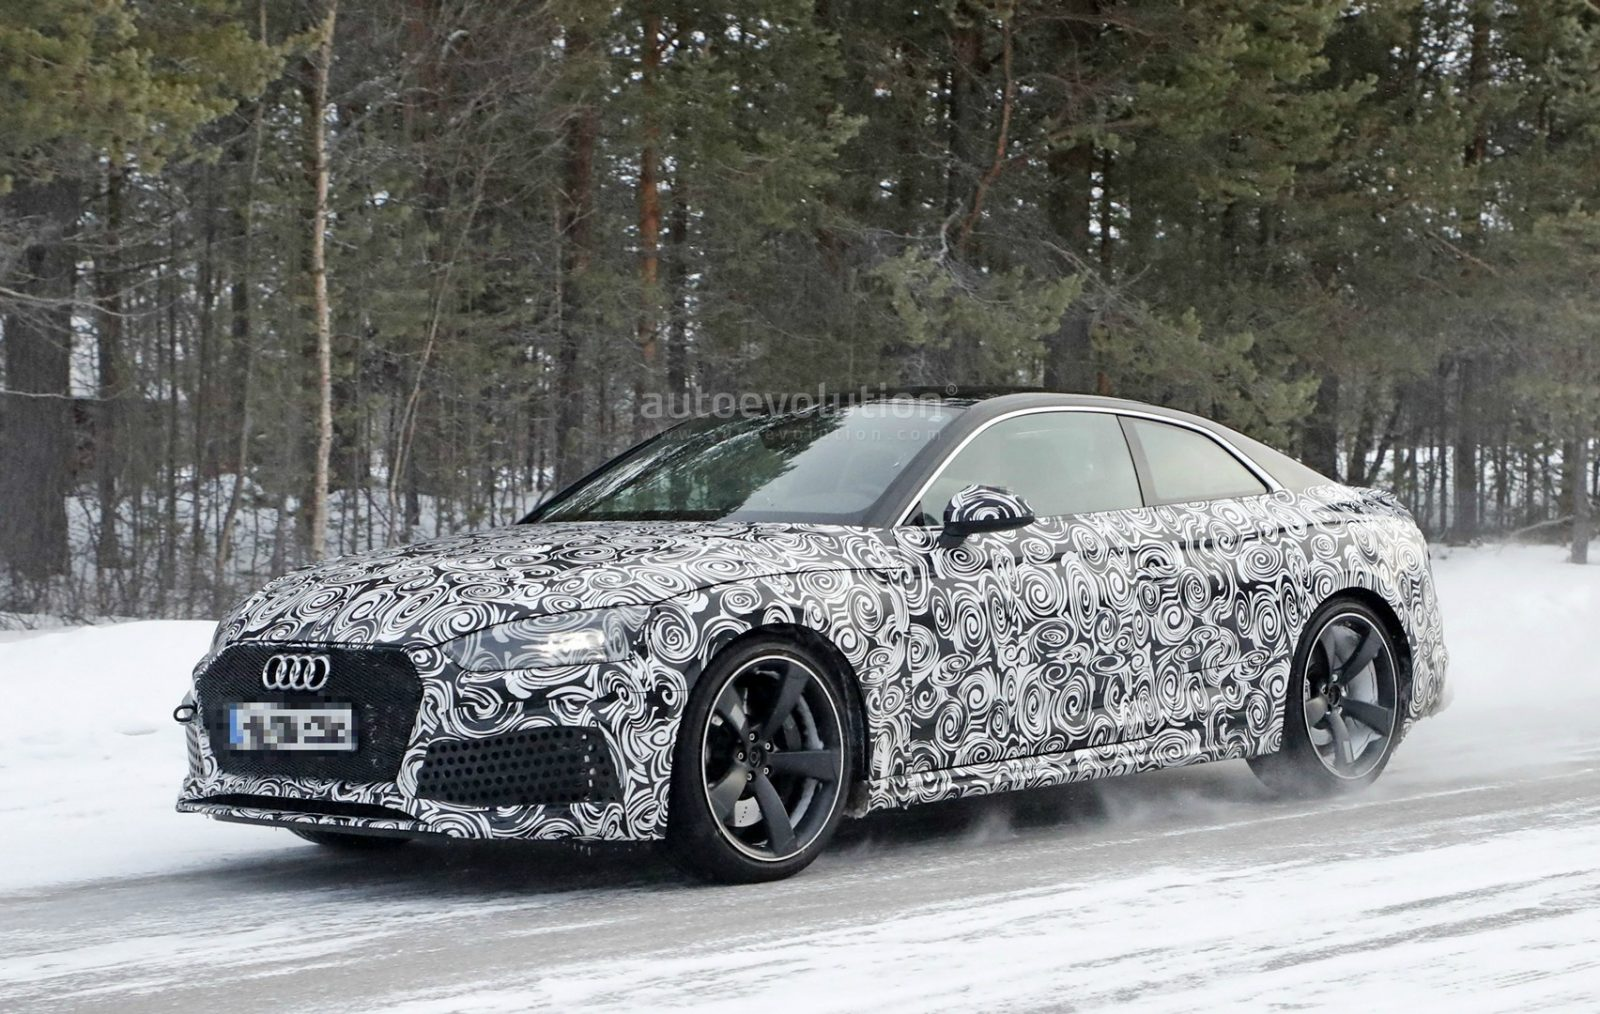 2018-audi-rs5-coupe-winter-testing-with-450-hp-600-nm-twin-turbo-v6_3